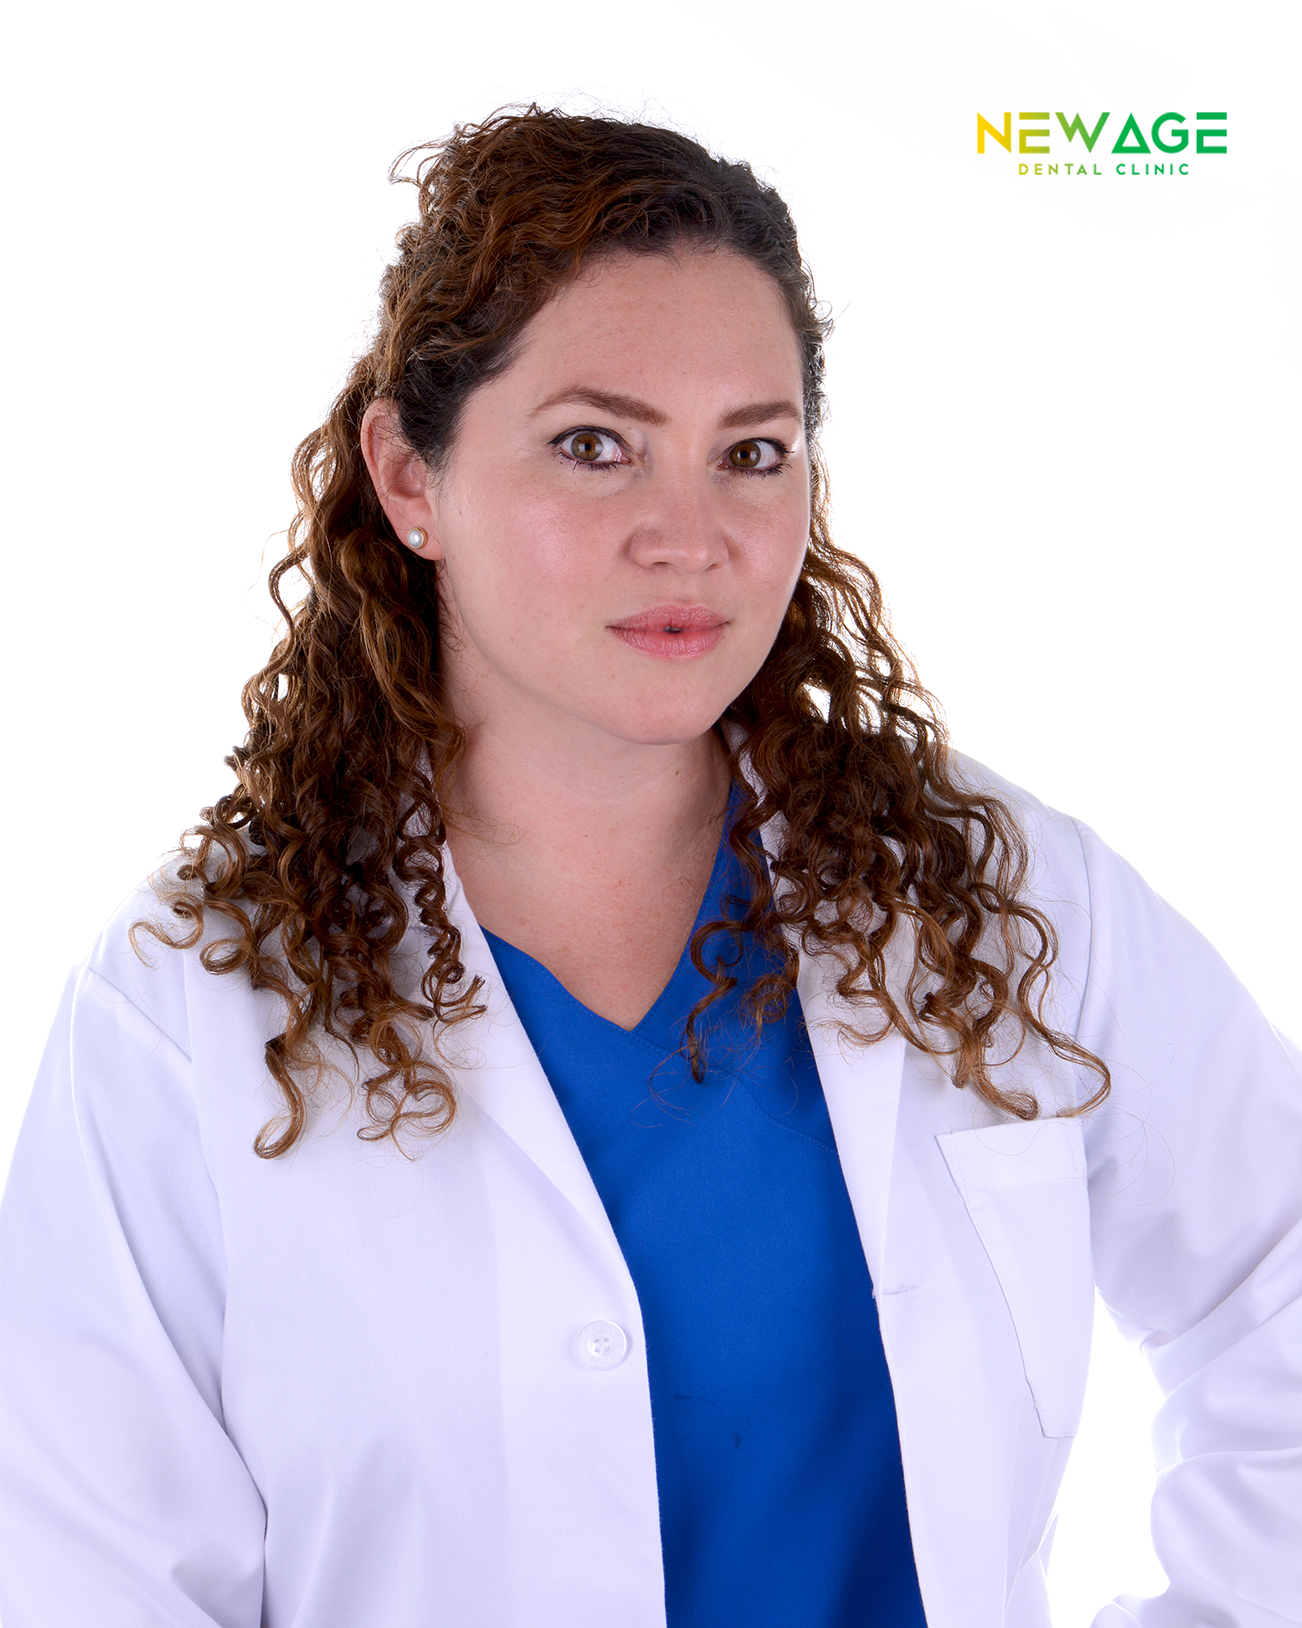 Dr. Denisse Elizondo, Orthodontics and Invisalign Specialist at New Age Dental Clinic in Tijuana